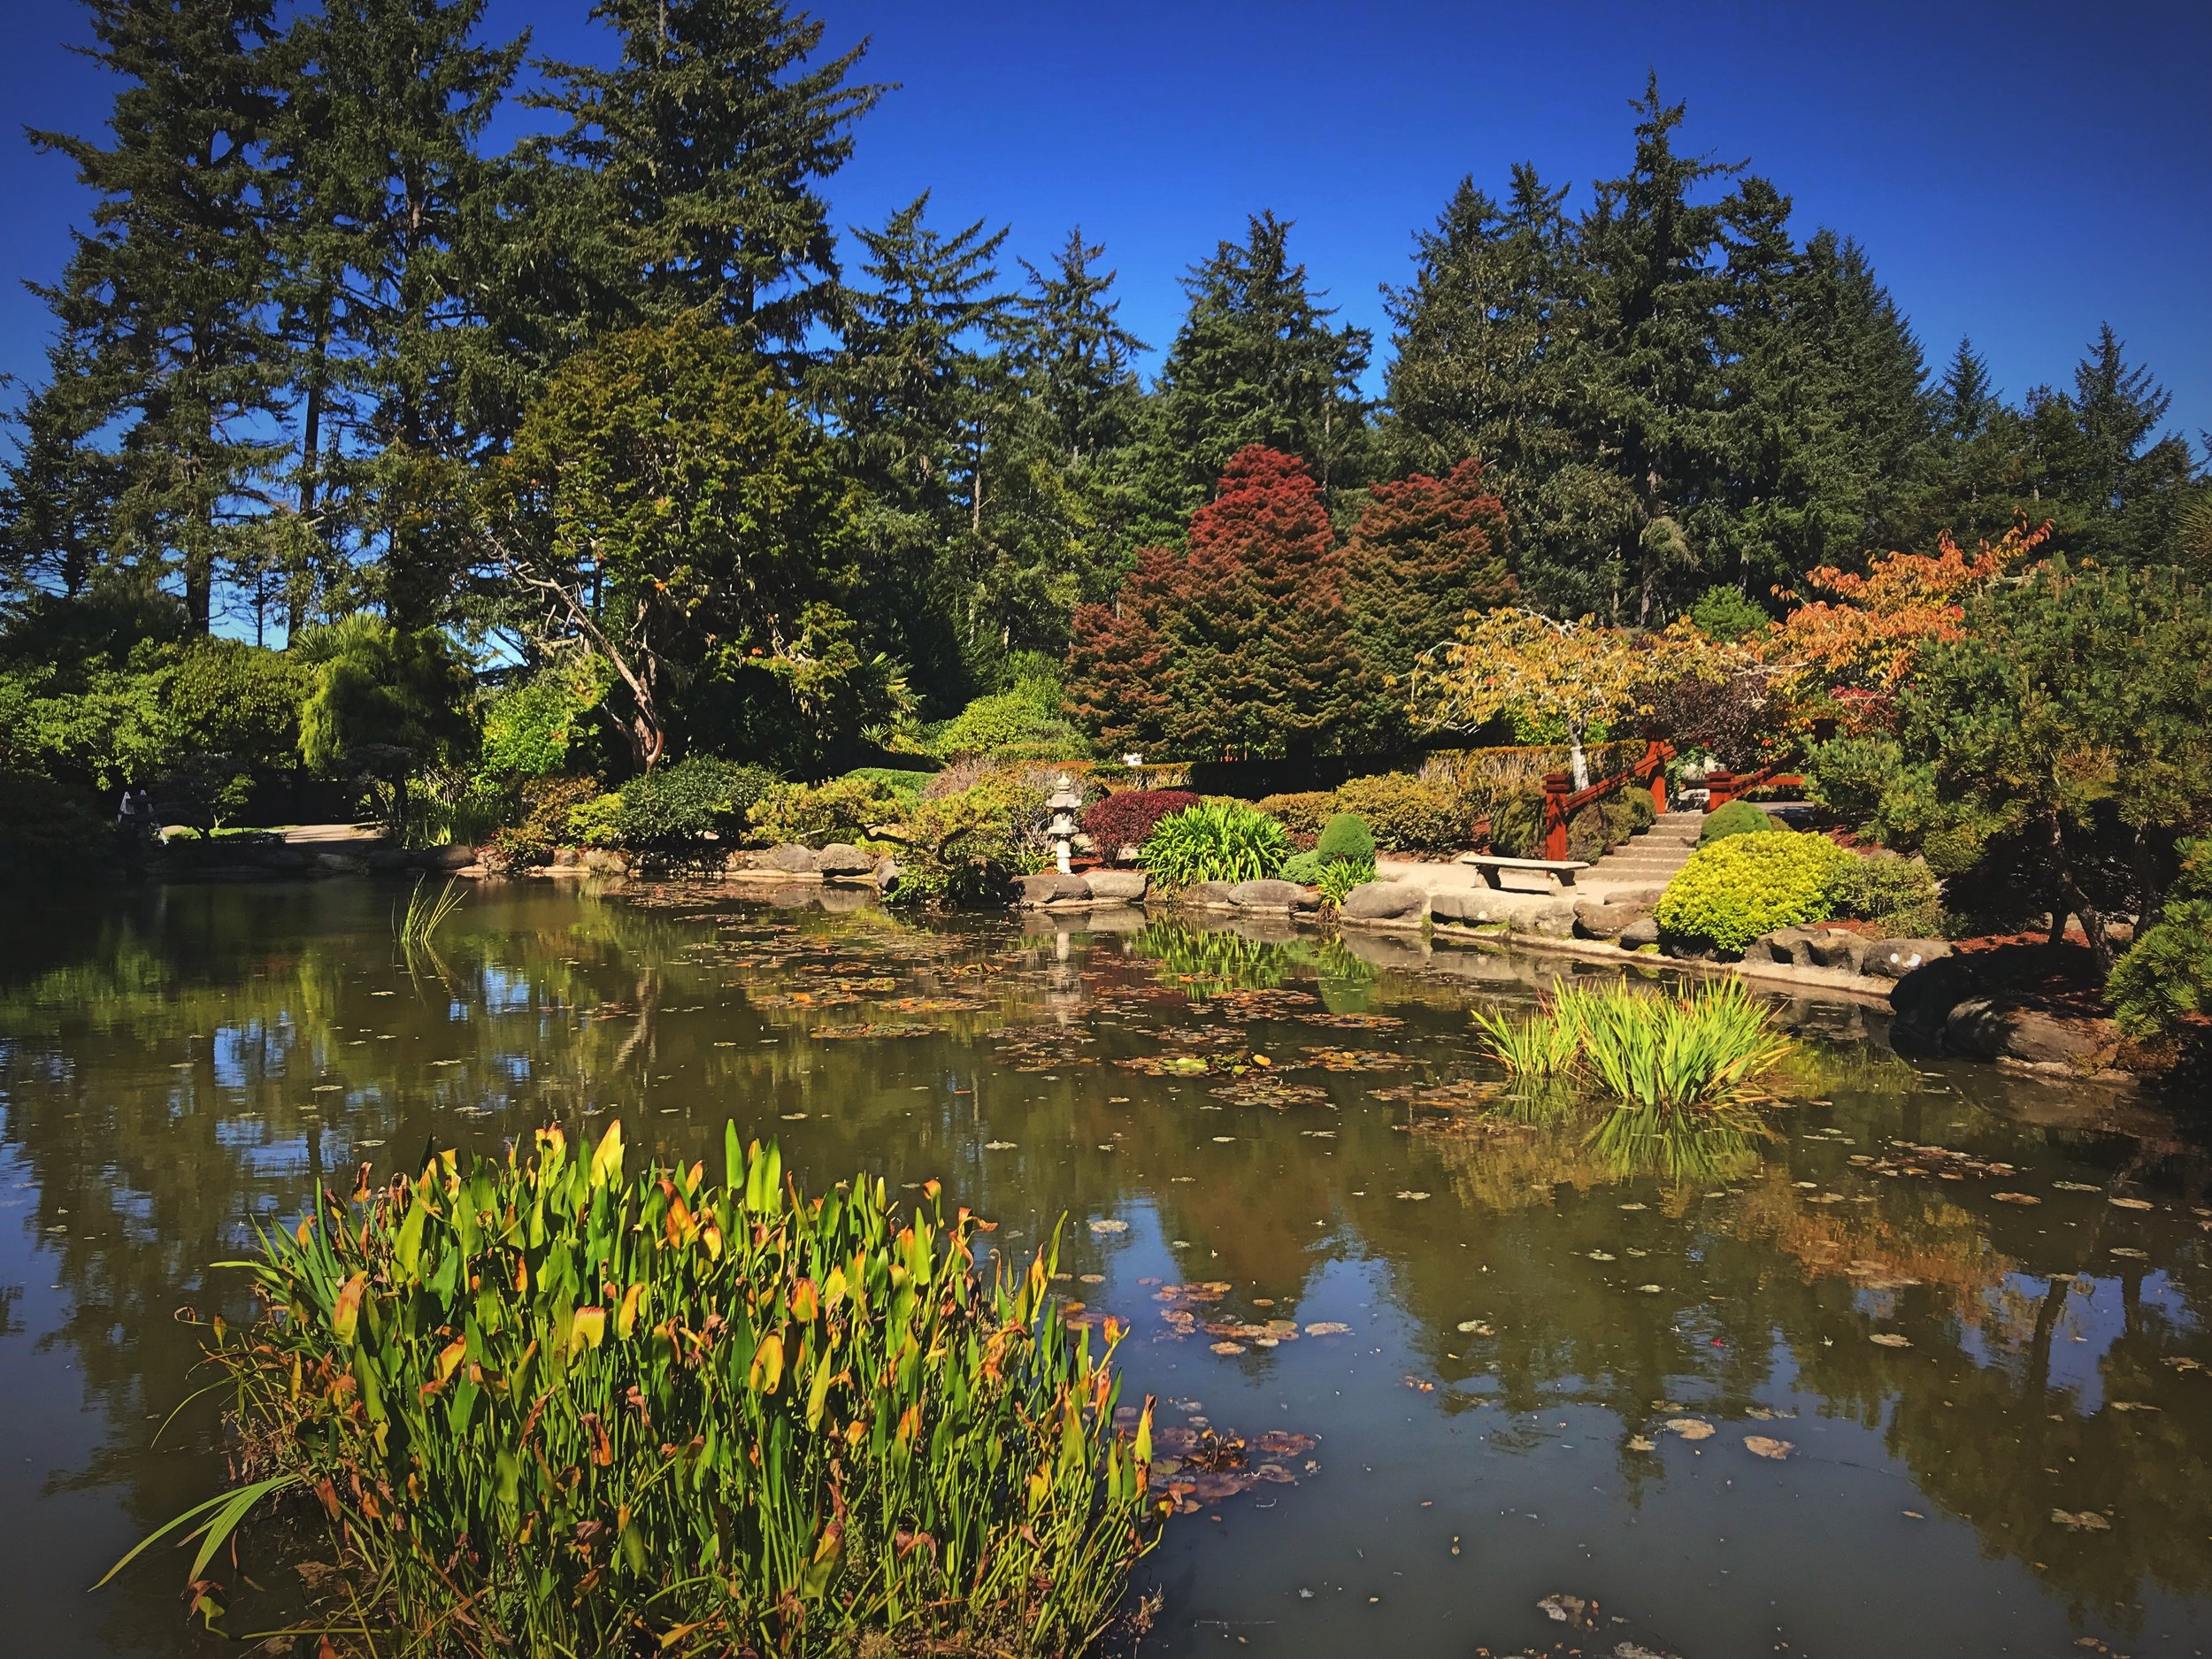 The Japanese Garden is as beautiful as the English rose gardens.